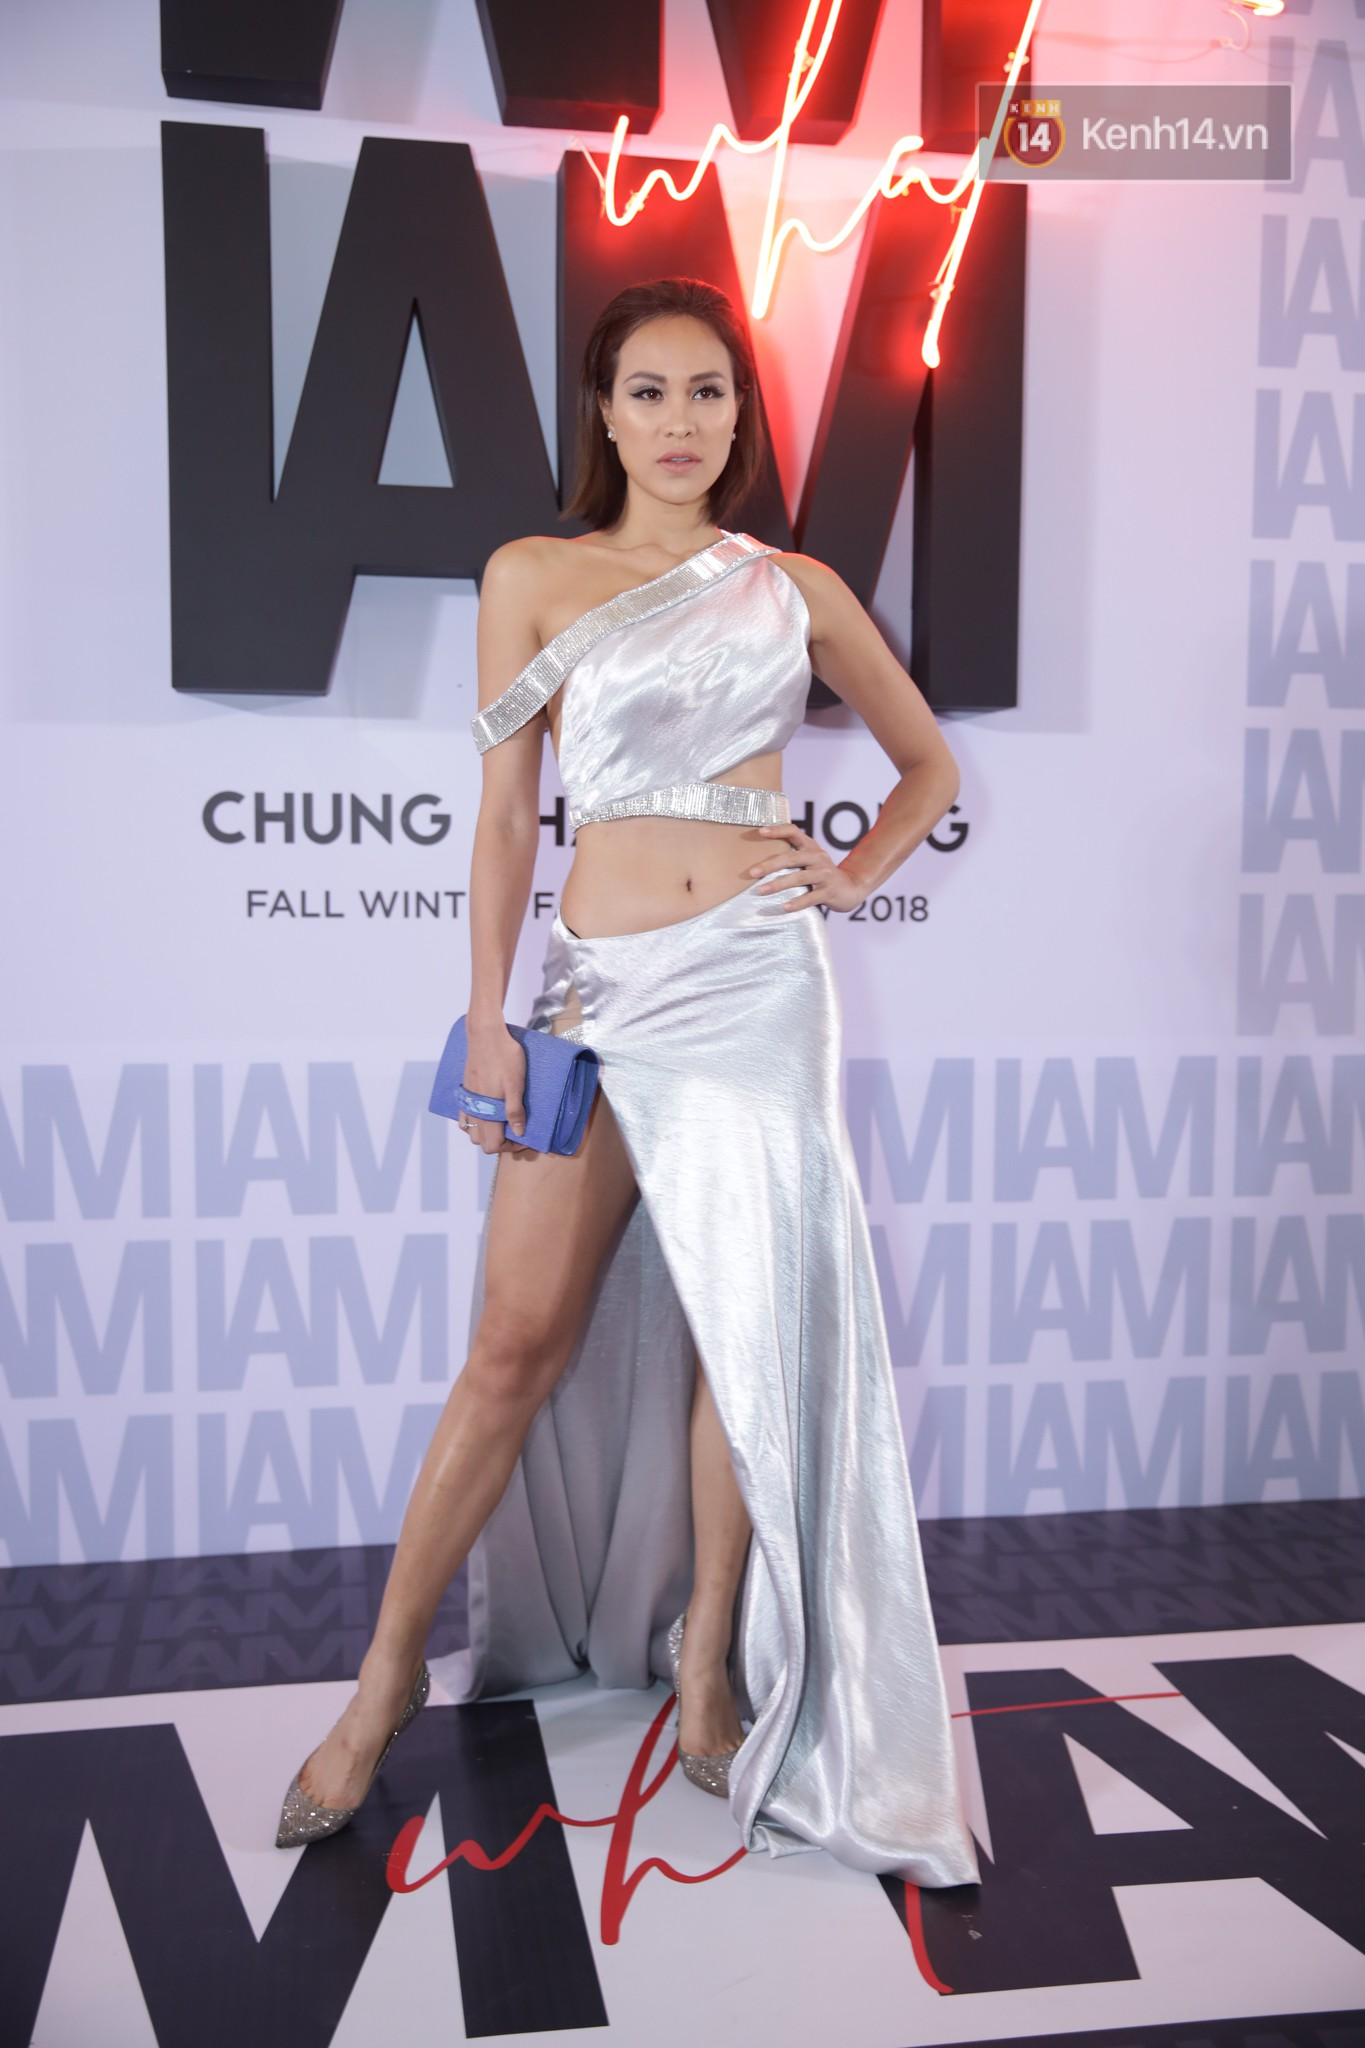 The red carpet Chung Thanh Phong show: it was able to test strange styles, Quỳnh Anh Shyn caught the spiders with rain - Photo 28.